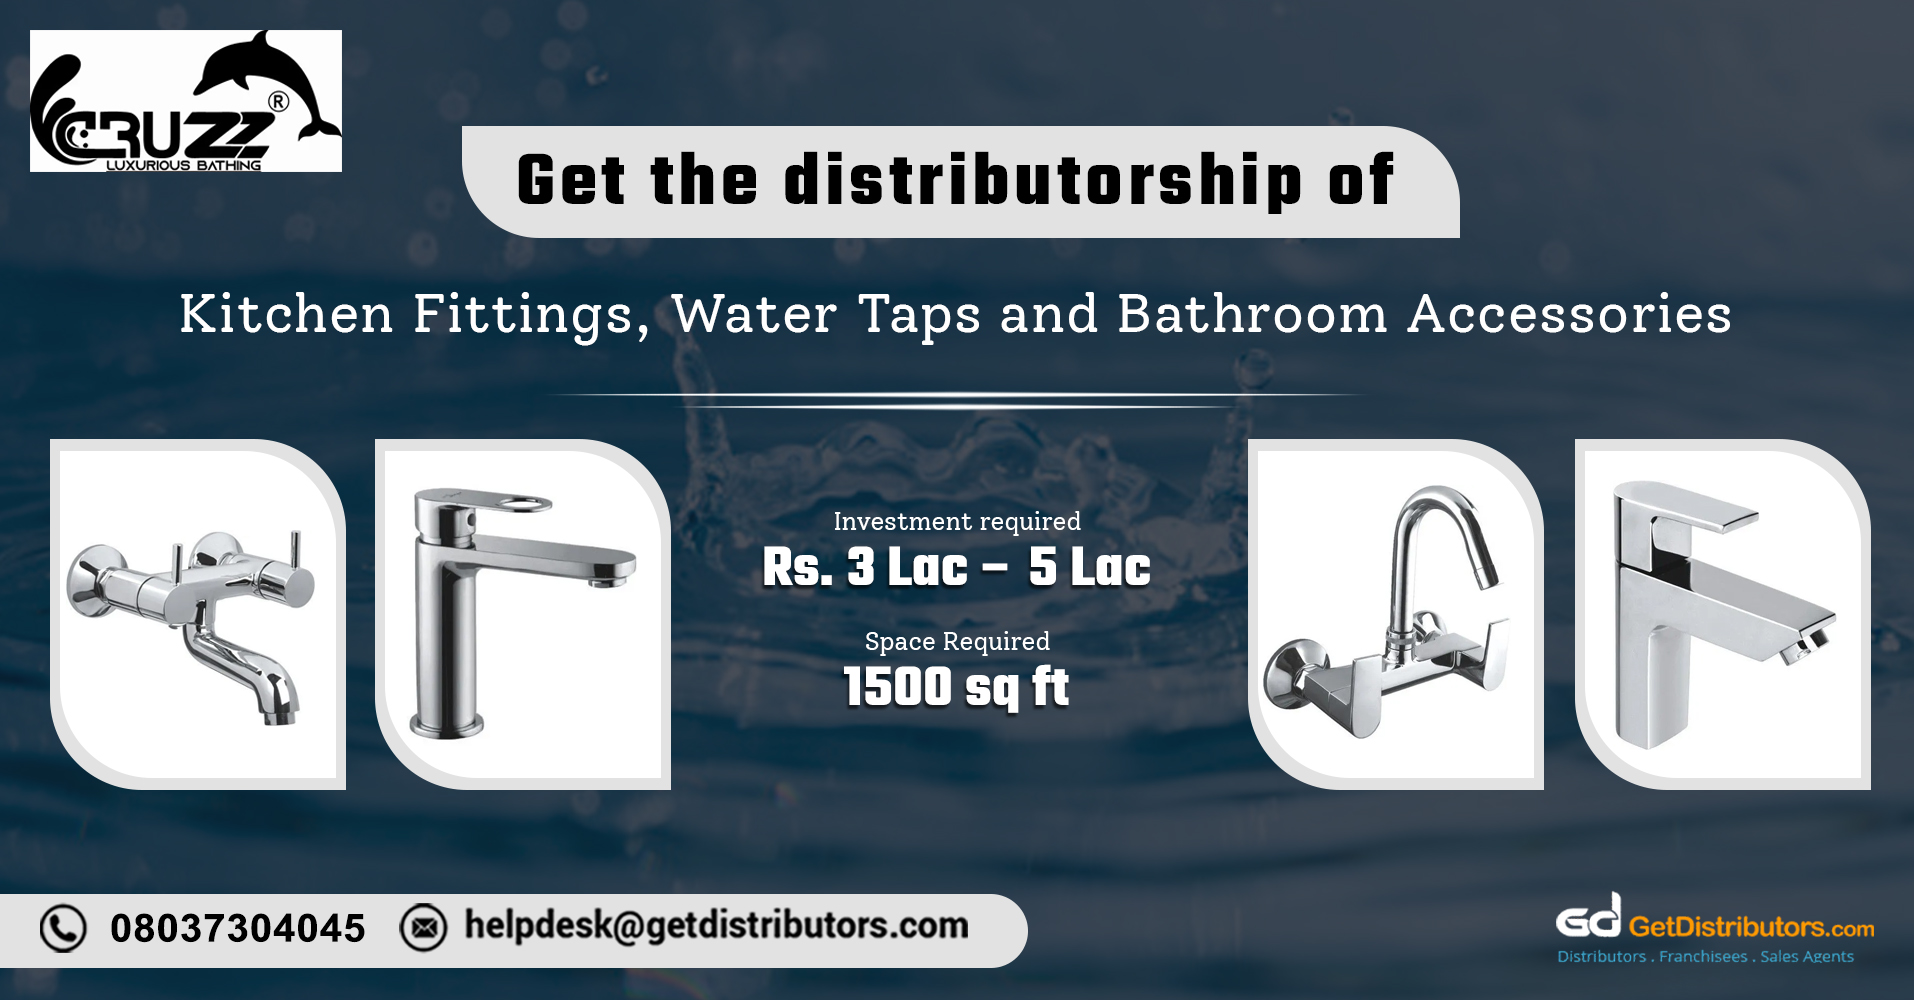 High-quality bathroom, kitchen fittings & accessories for distribution